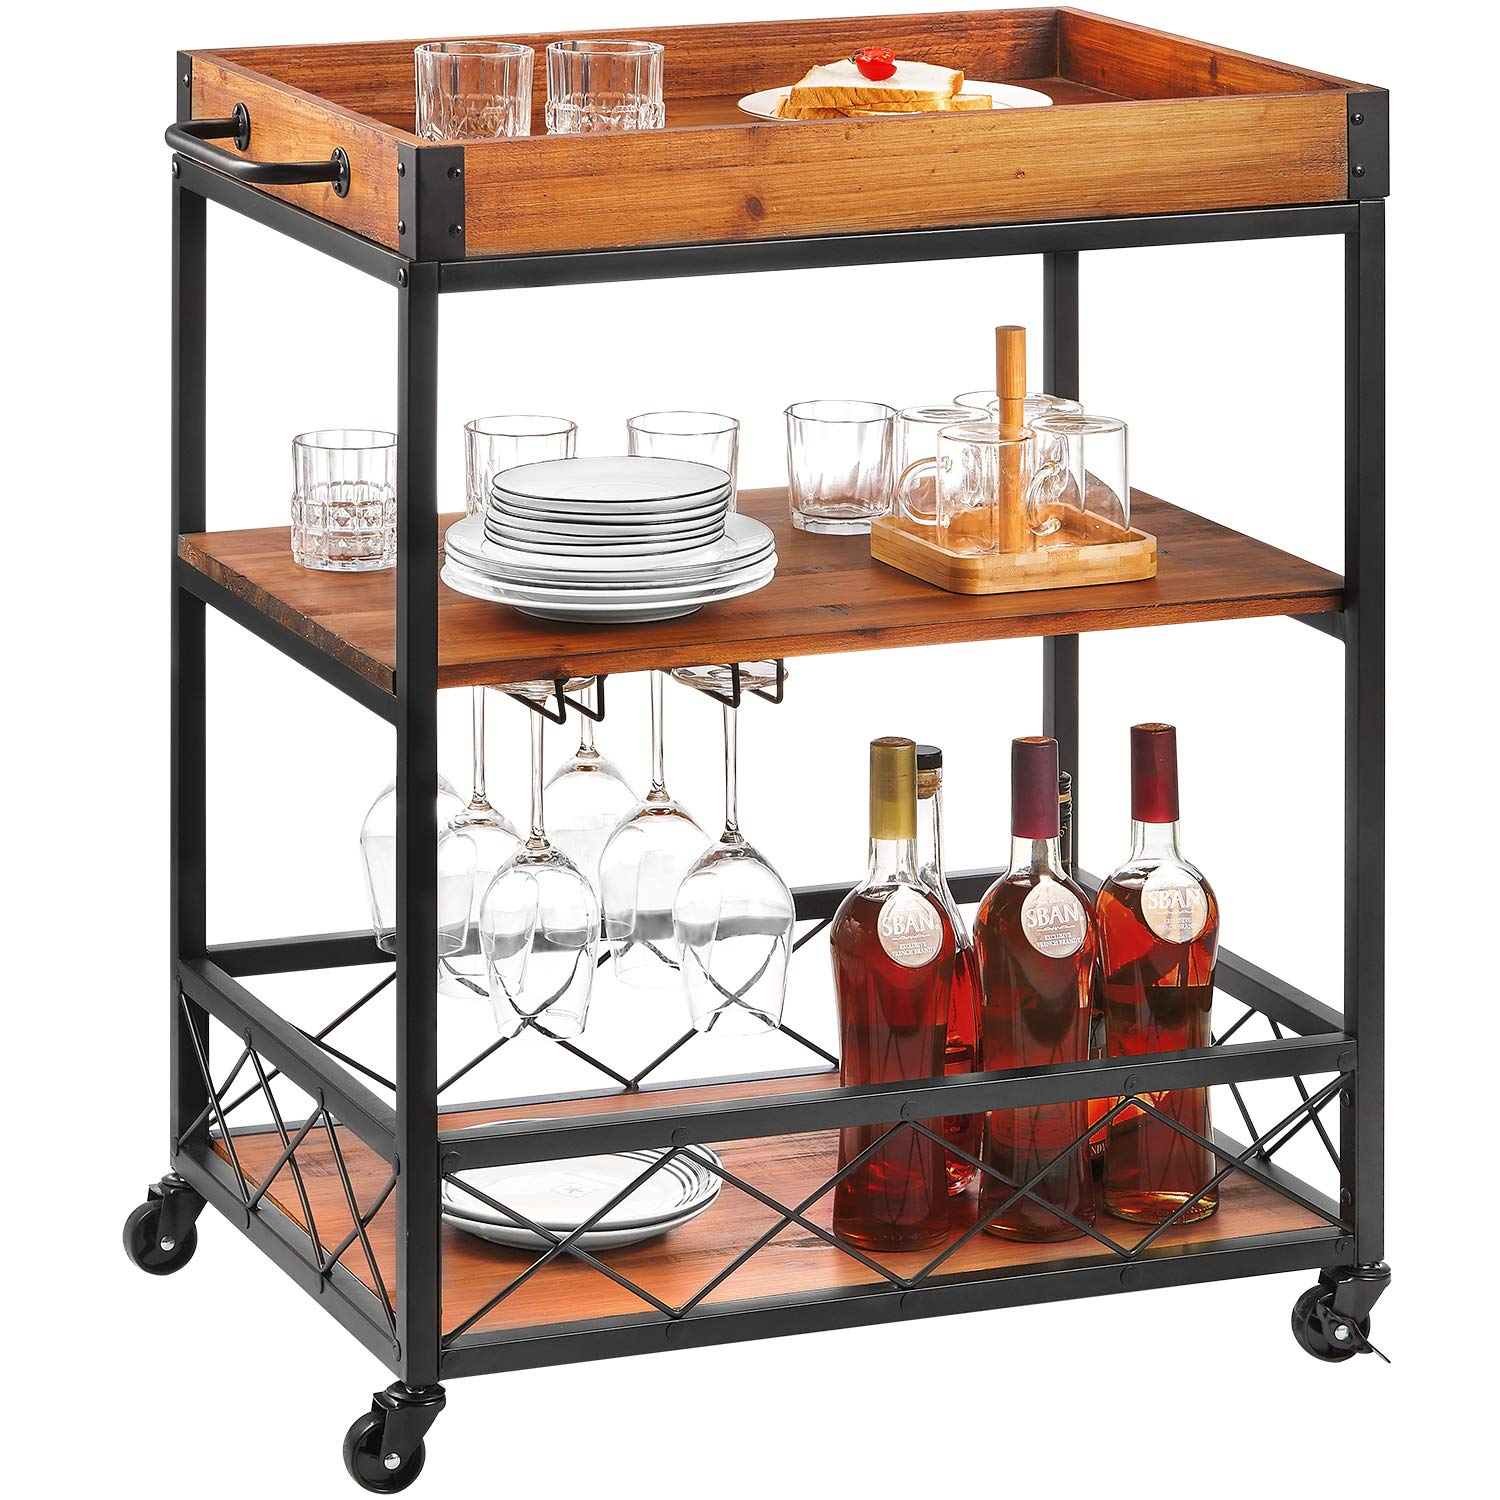 Bar Cart Kealive Kitchen Island Rolling Cart, 3-Tier Storage Shelf with Rack, Bottle Holder, Removable Wood Box Container, Brown 26L x 18W x 32.5in H by kealive